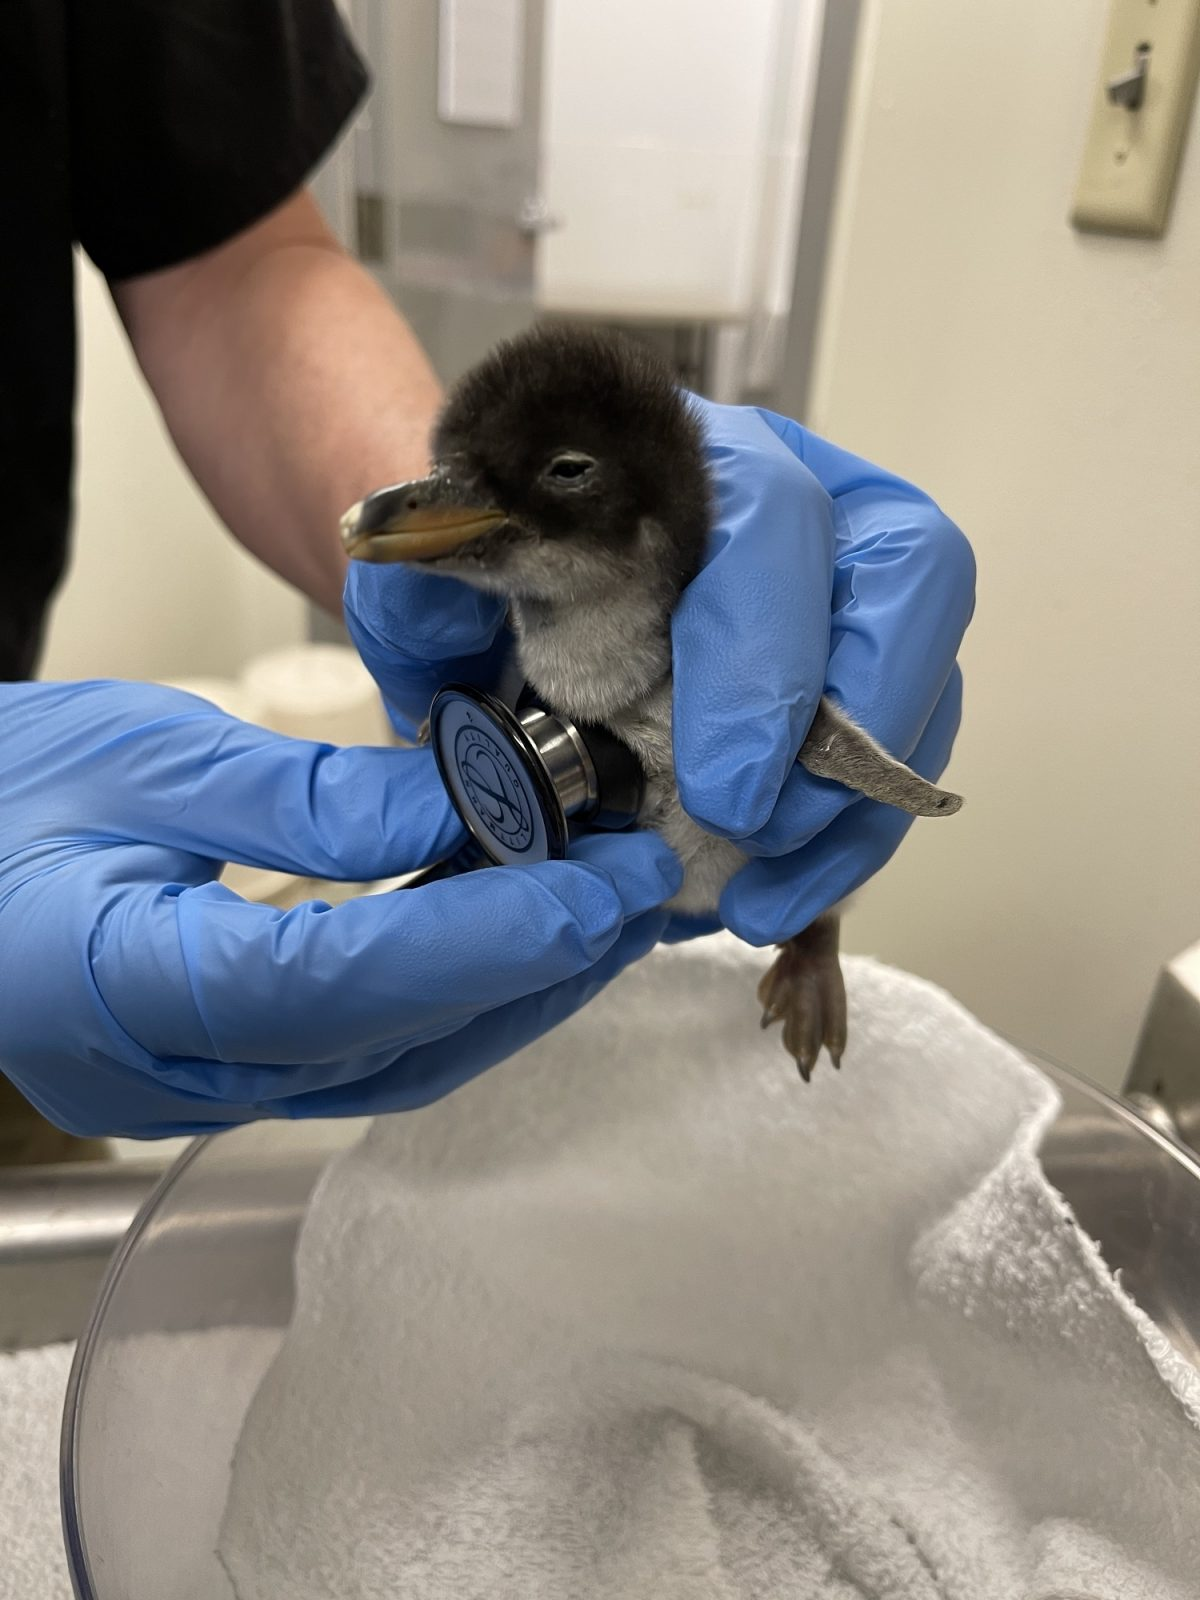 A Gentoo Penguin chick undergoes a routine veterinary exam. Only a day old, it weighs 132 grams (about four ounces).